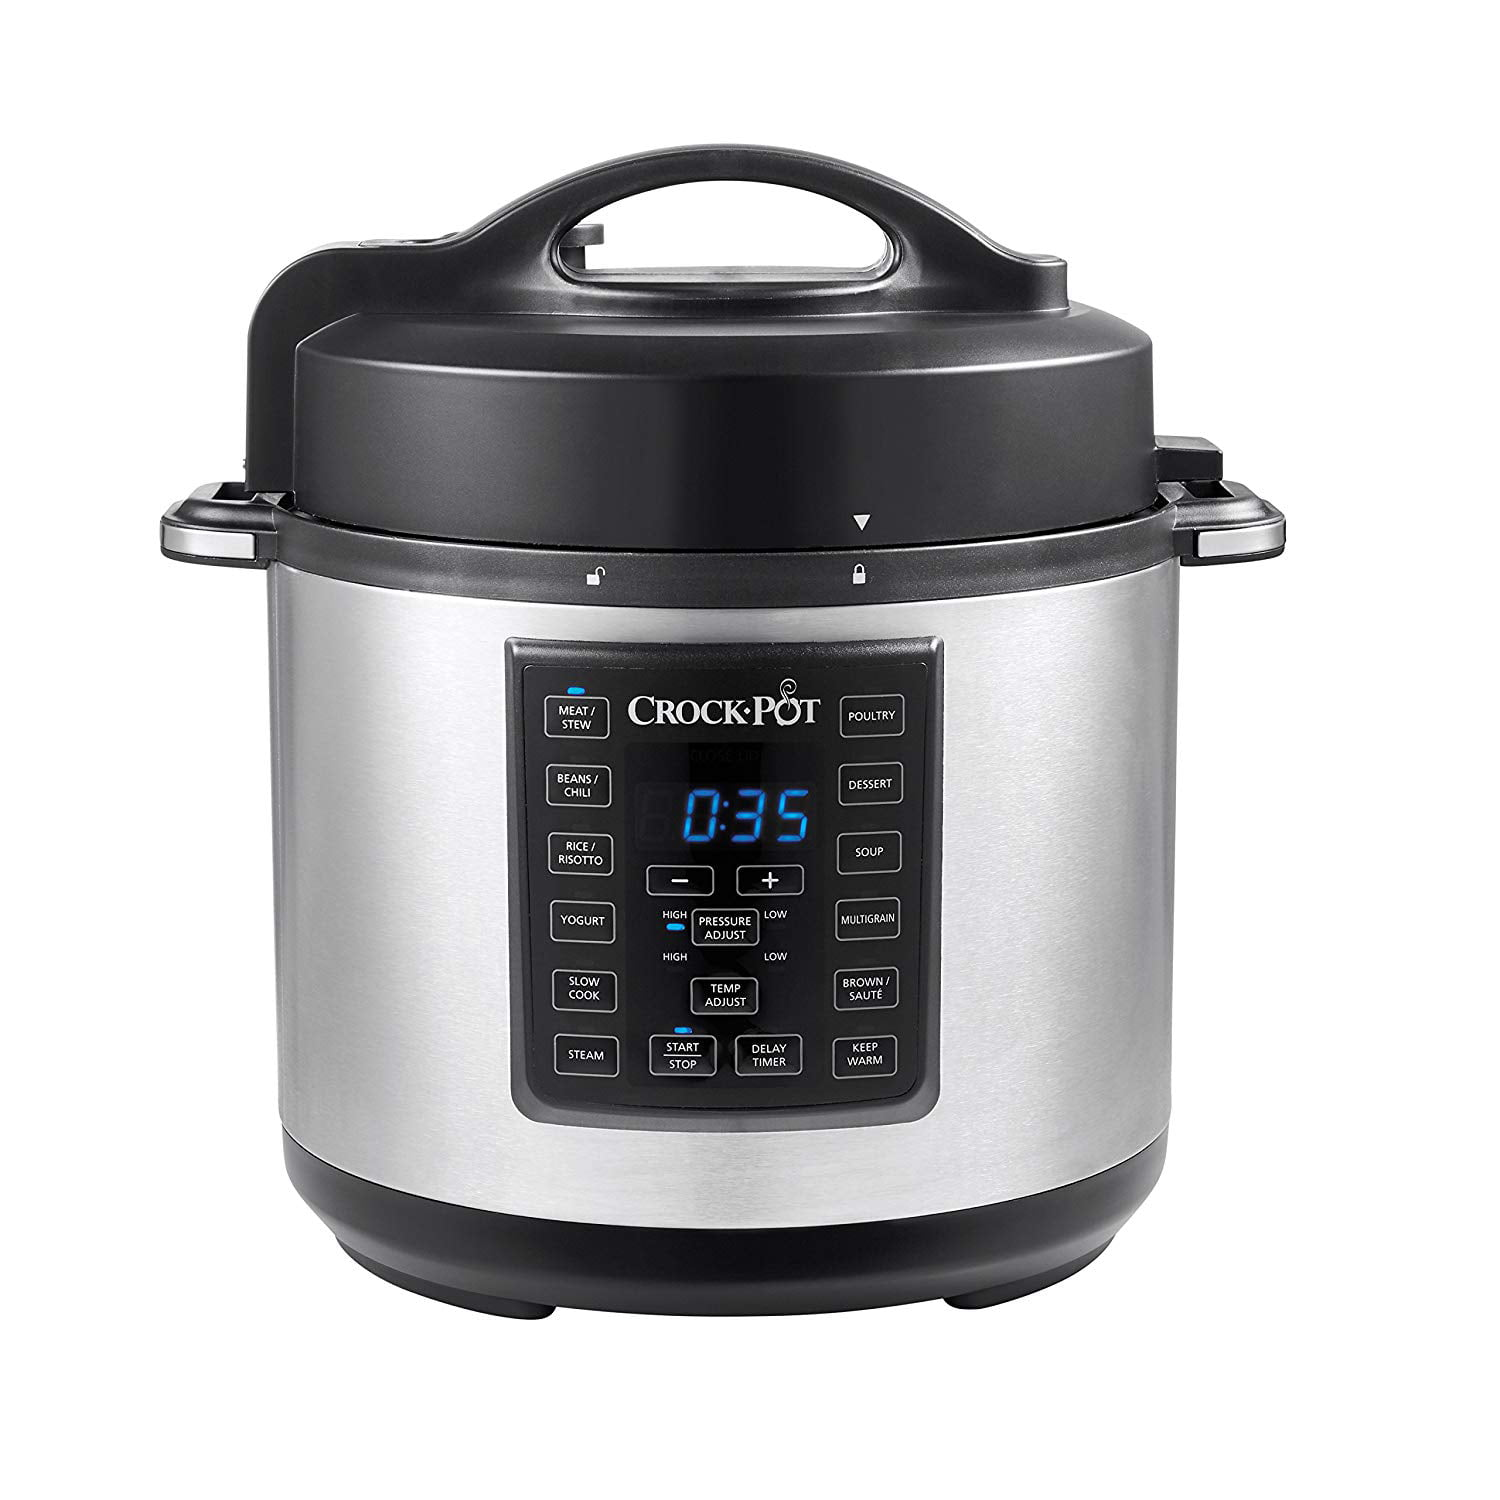 Crock-Pot 6 Qt 8-in-1 Multi-Use Express Crock Programmable Slow Cooker, Pressure Cooker, Sauté, and Steamer,... by Newell